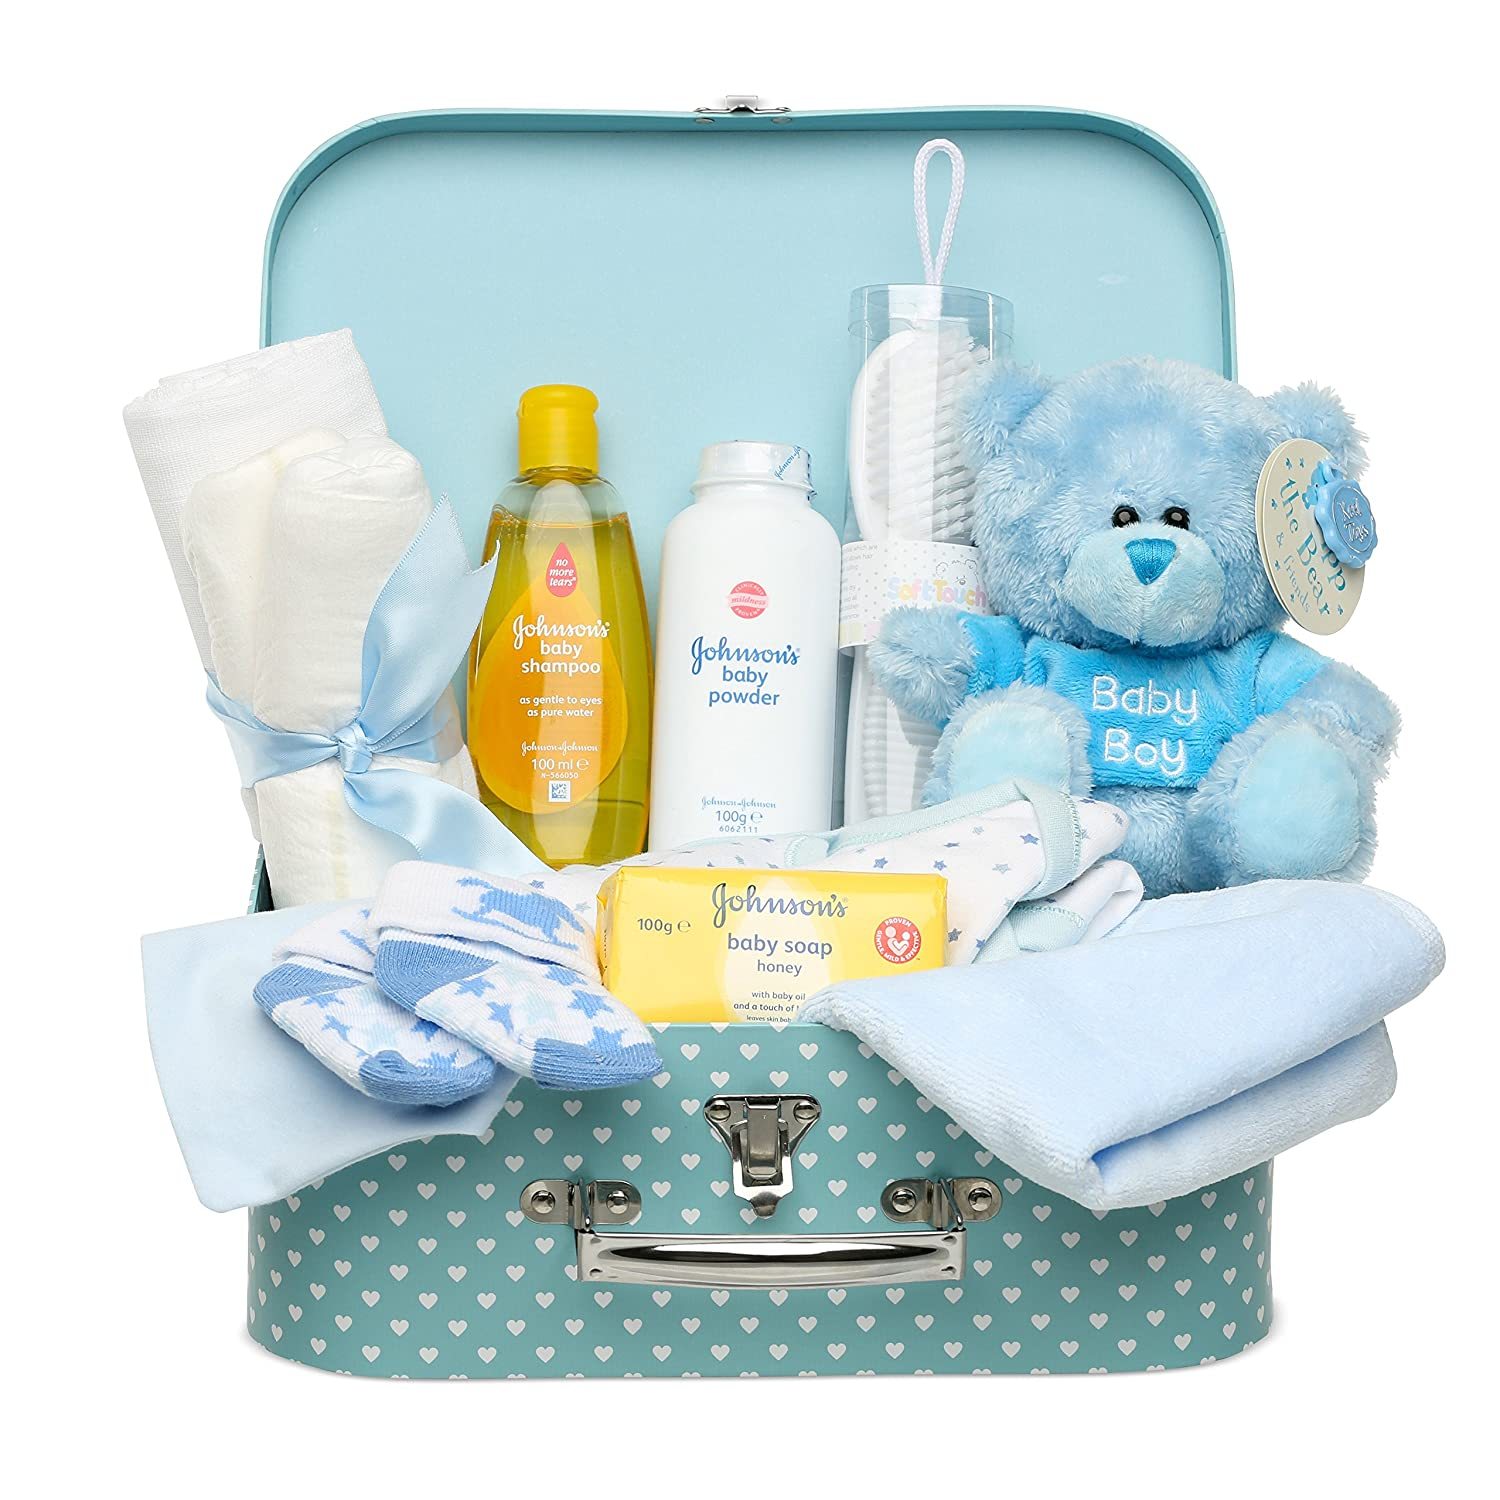 8bbaa9f2b26 Newborn Baby Gift Set - Keepsake Box in Blue with Baby Clothes ...